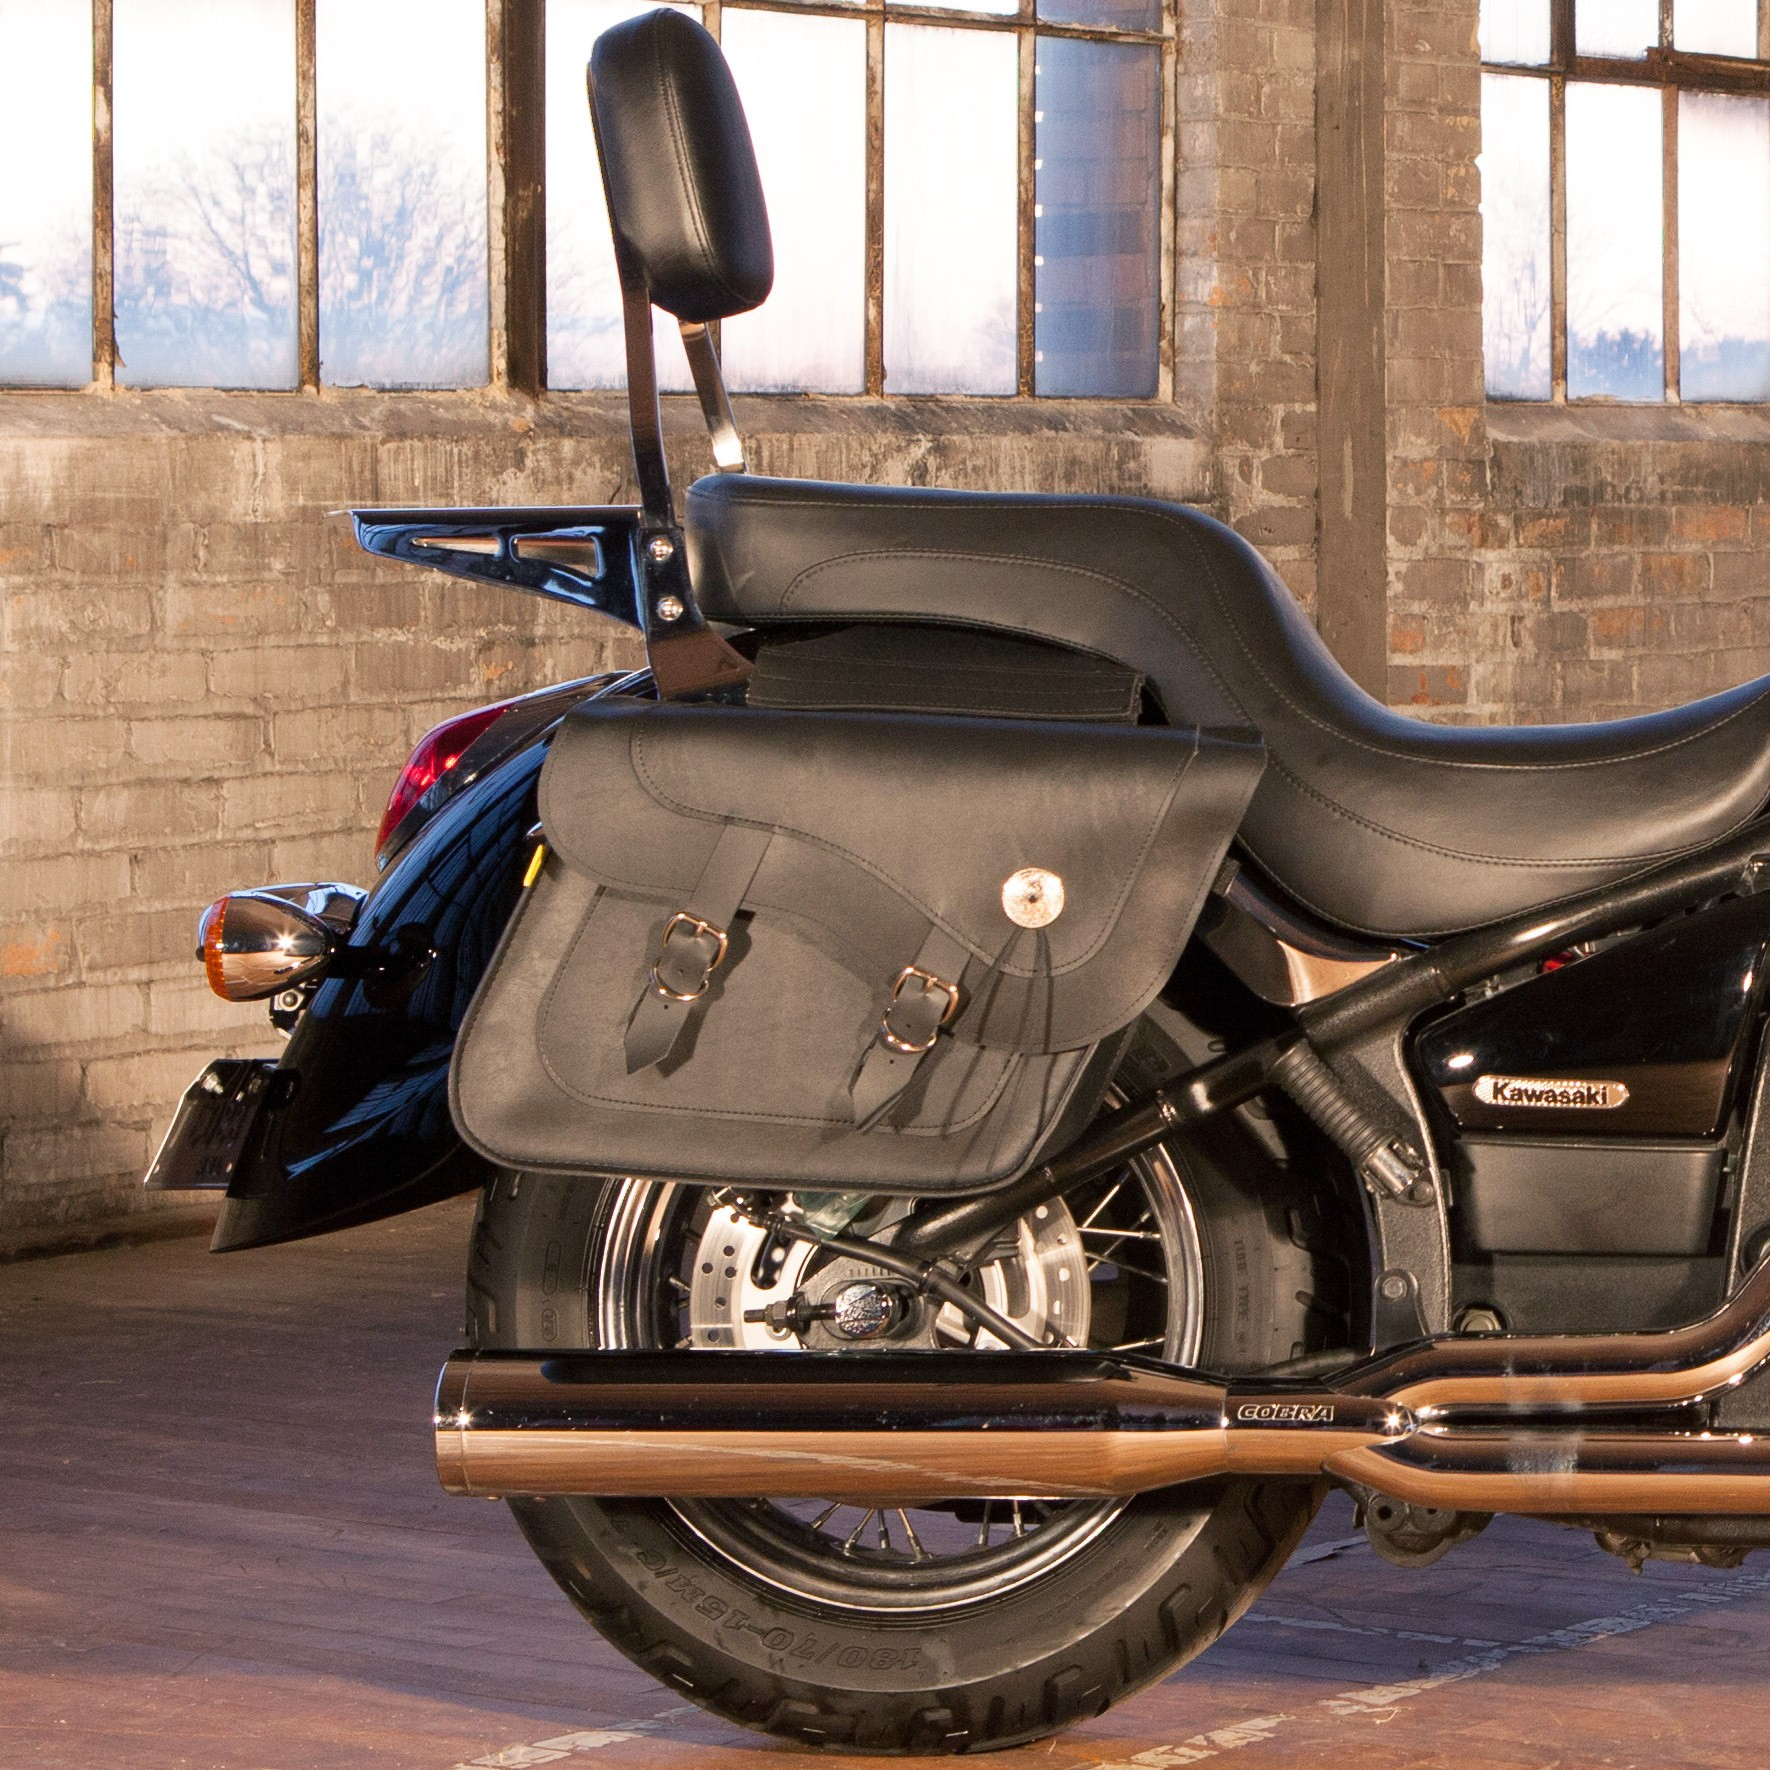 Dowco Willie and Max Deluxe Large Slant Saddlebags on a Kawasaki Vulcan 950